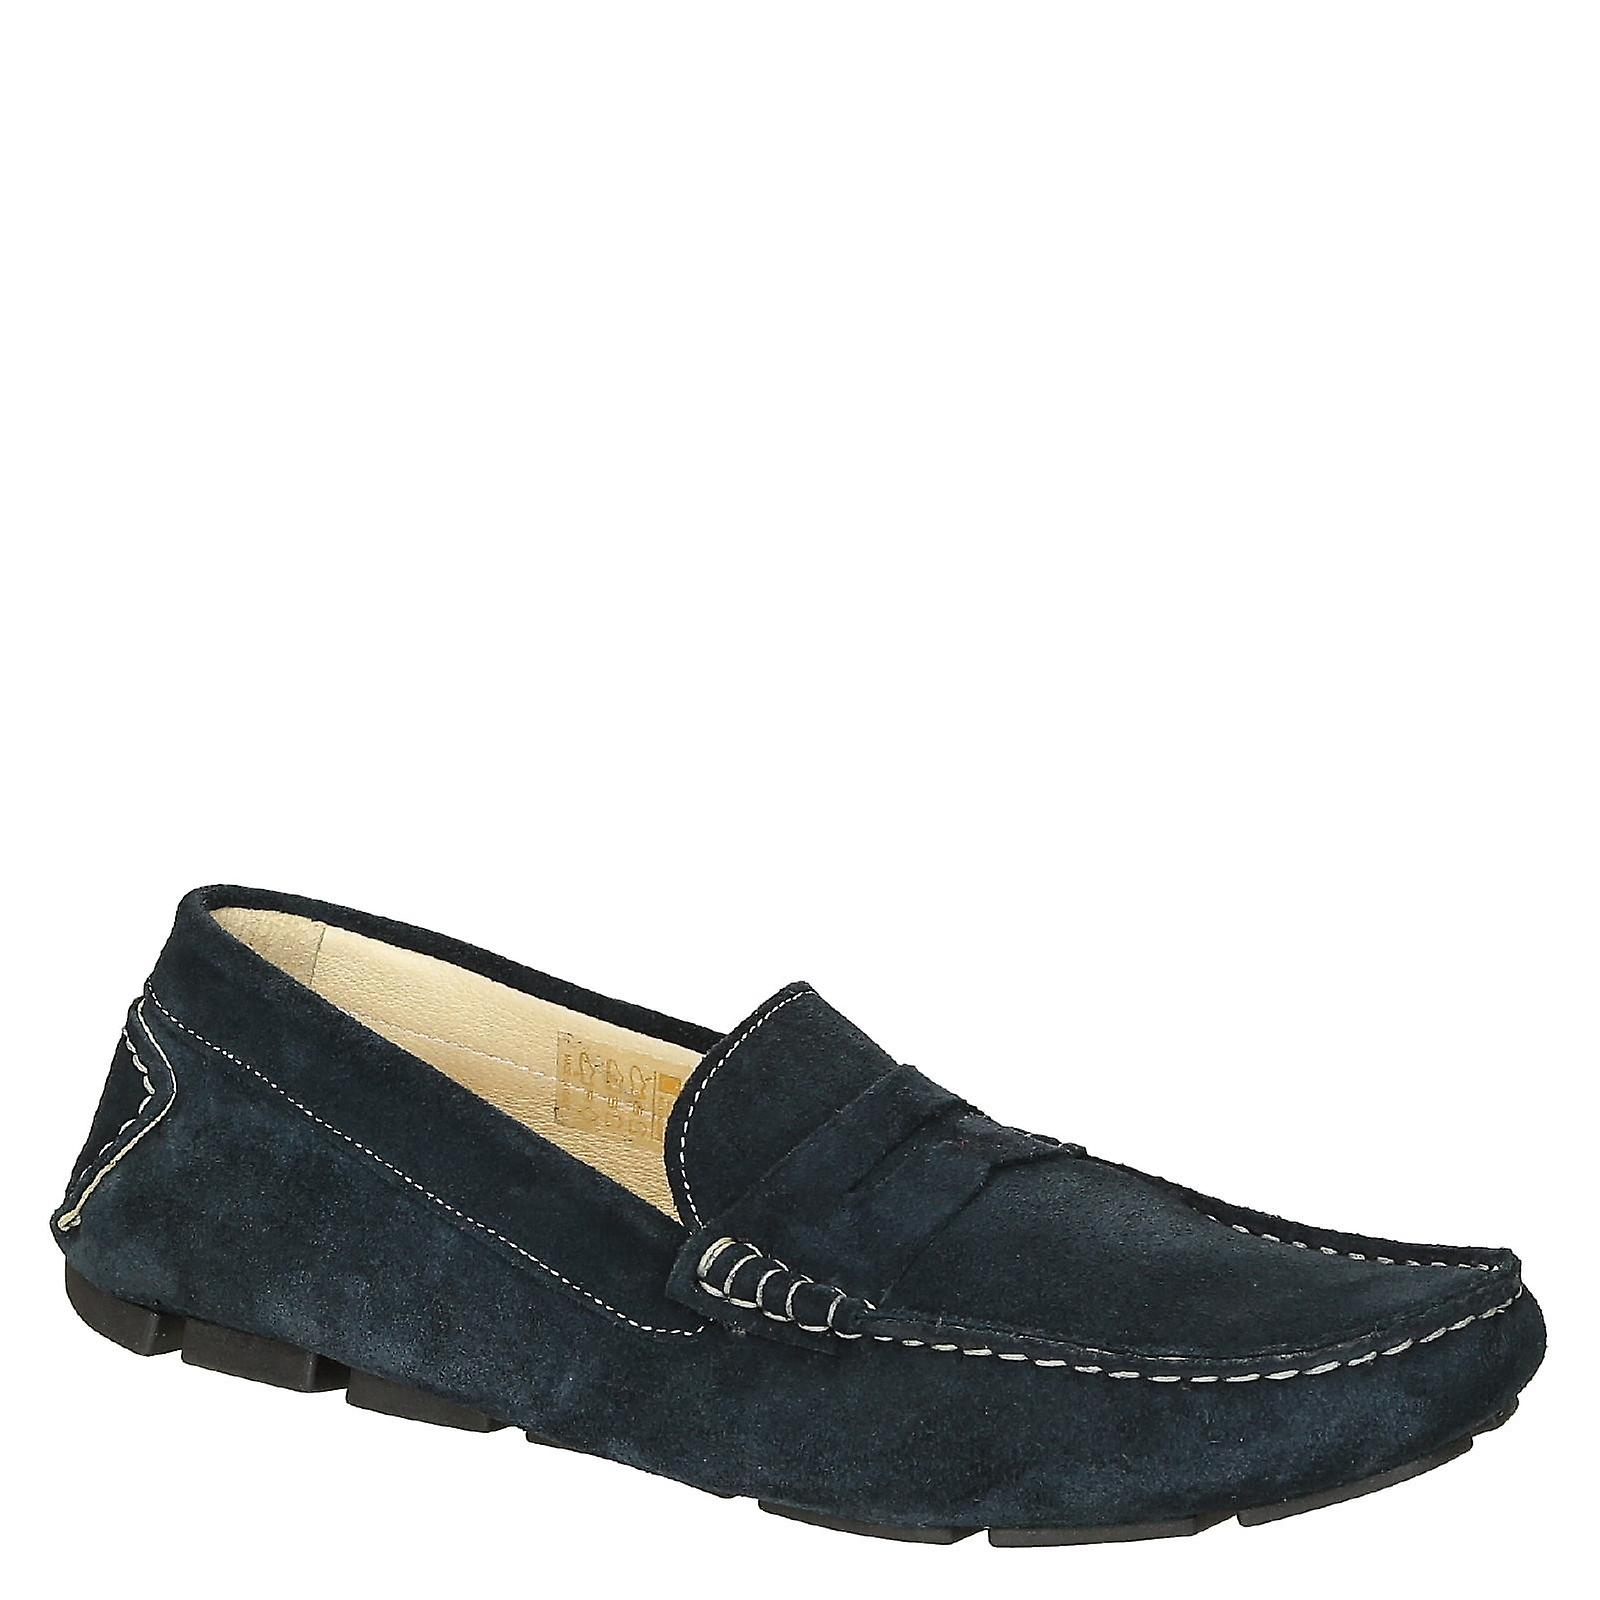 Blue suede leather made men's moccasins made leather in Italy 8a4eee